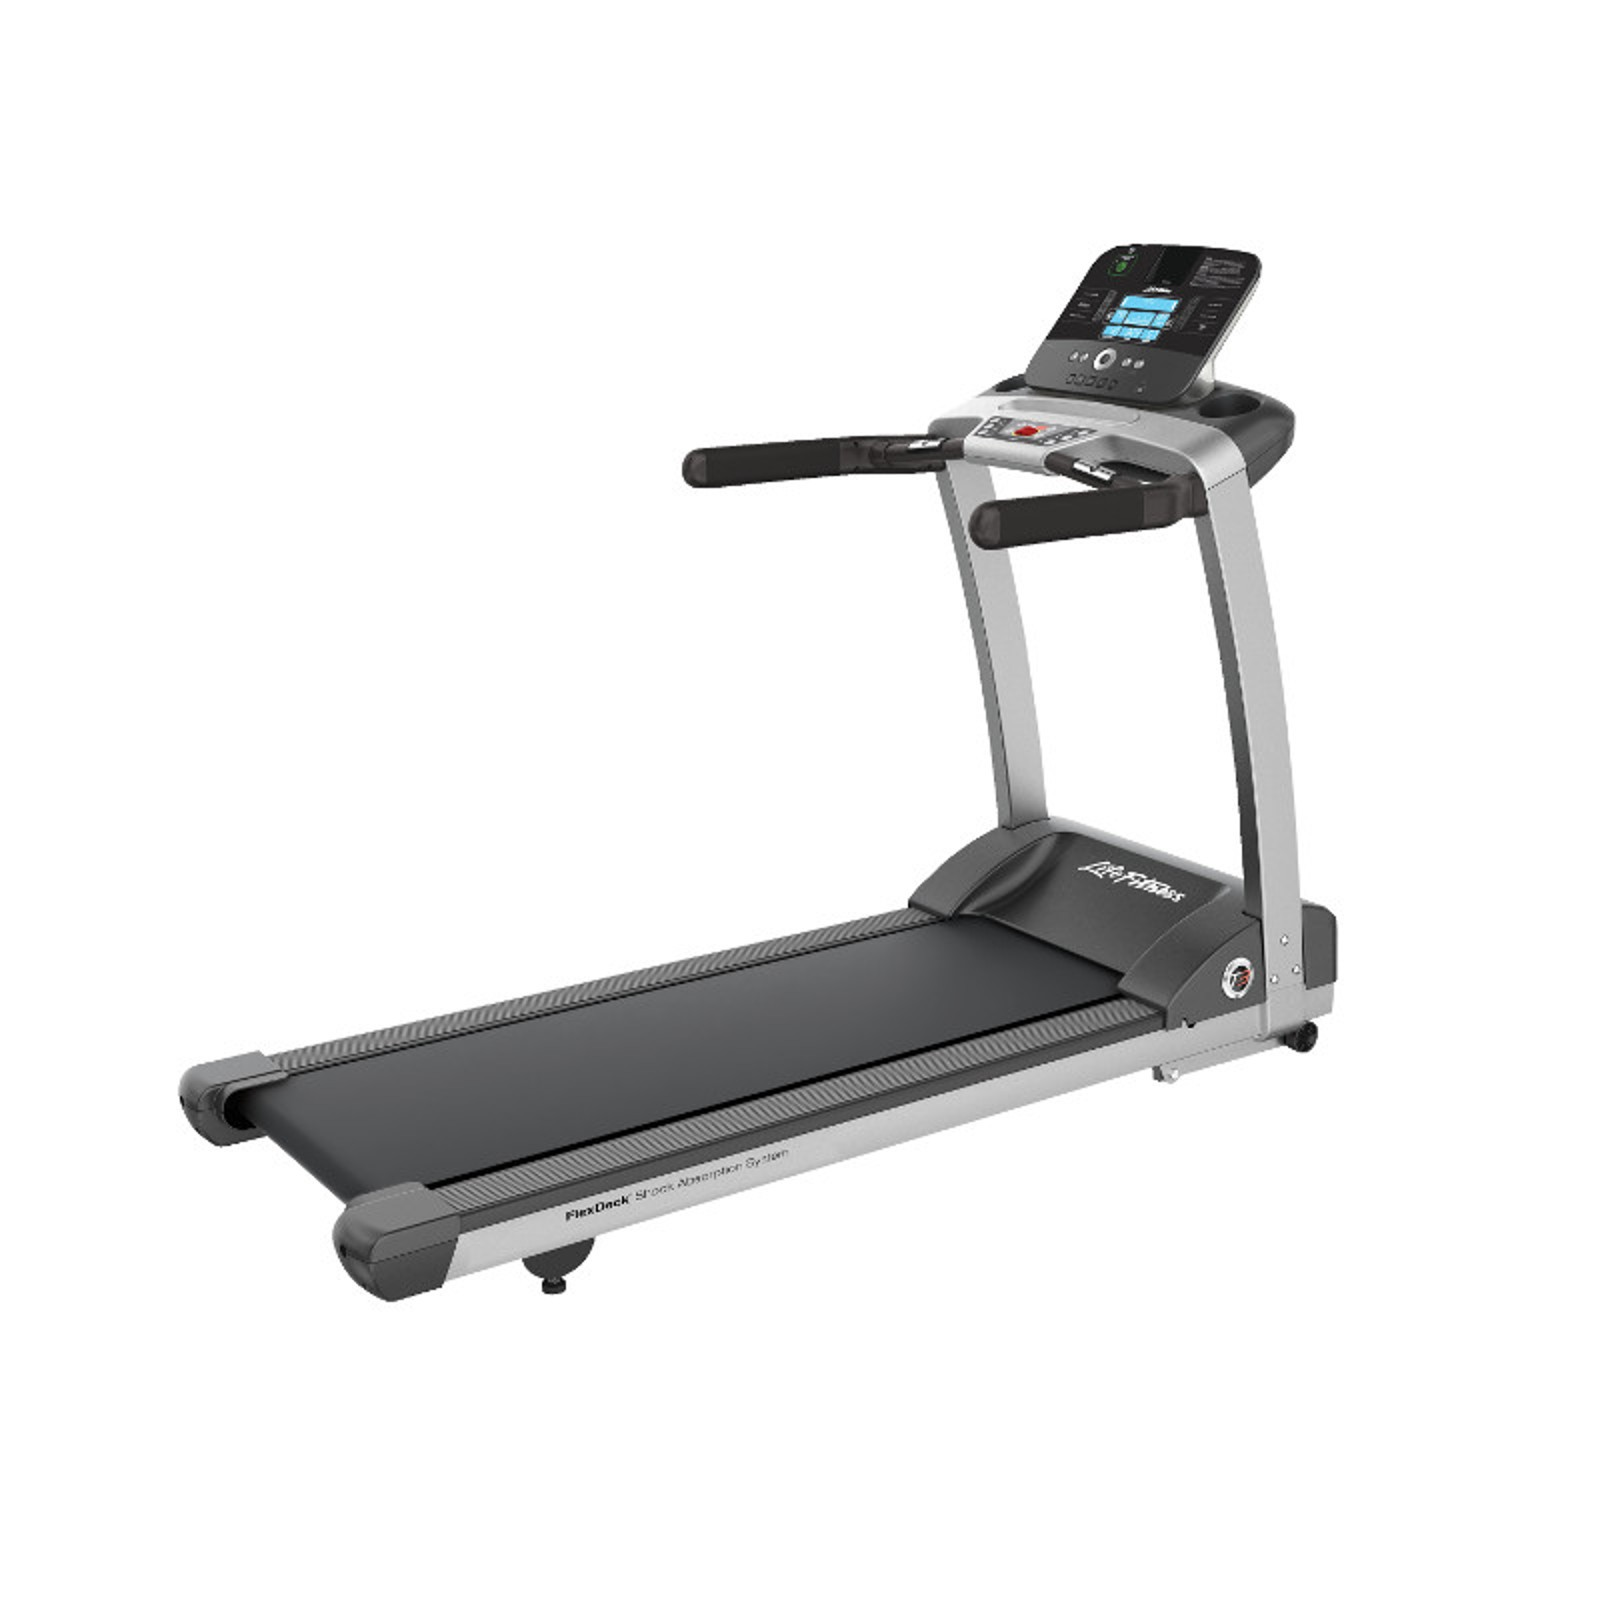 Life Fitness Treadmill Top Speed: Life Fitness Treadmill T3 With Track Plus Console